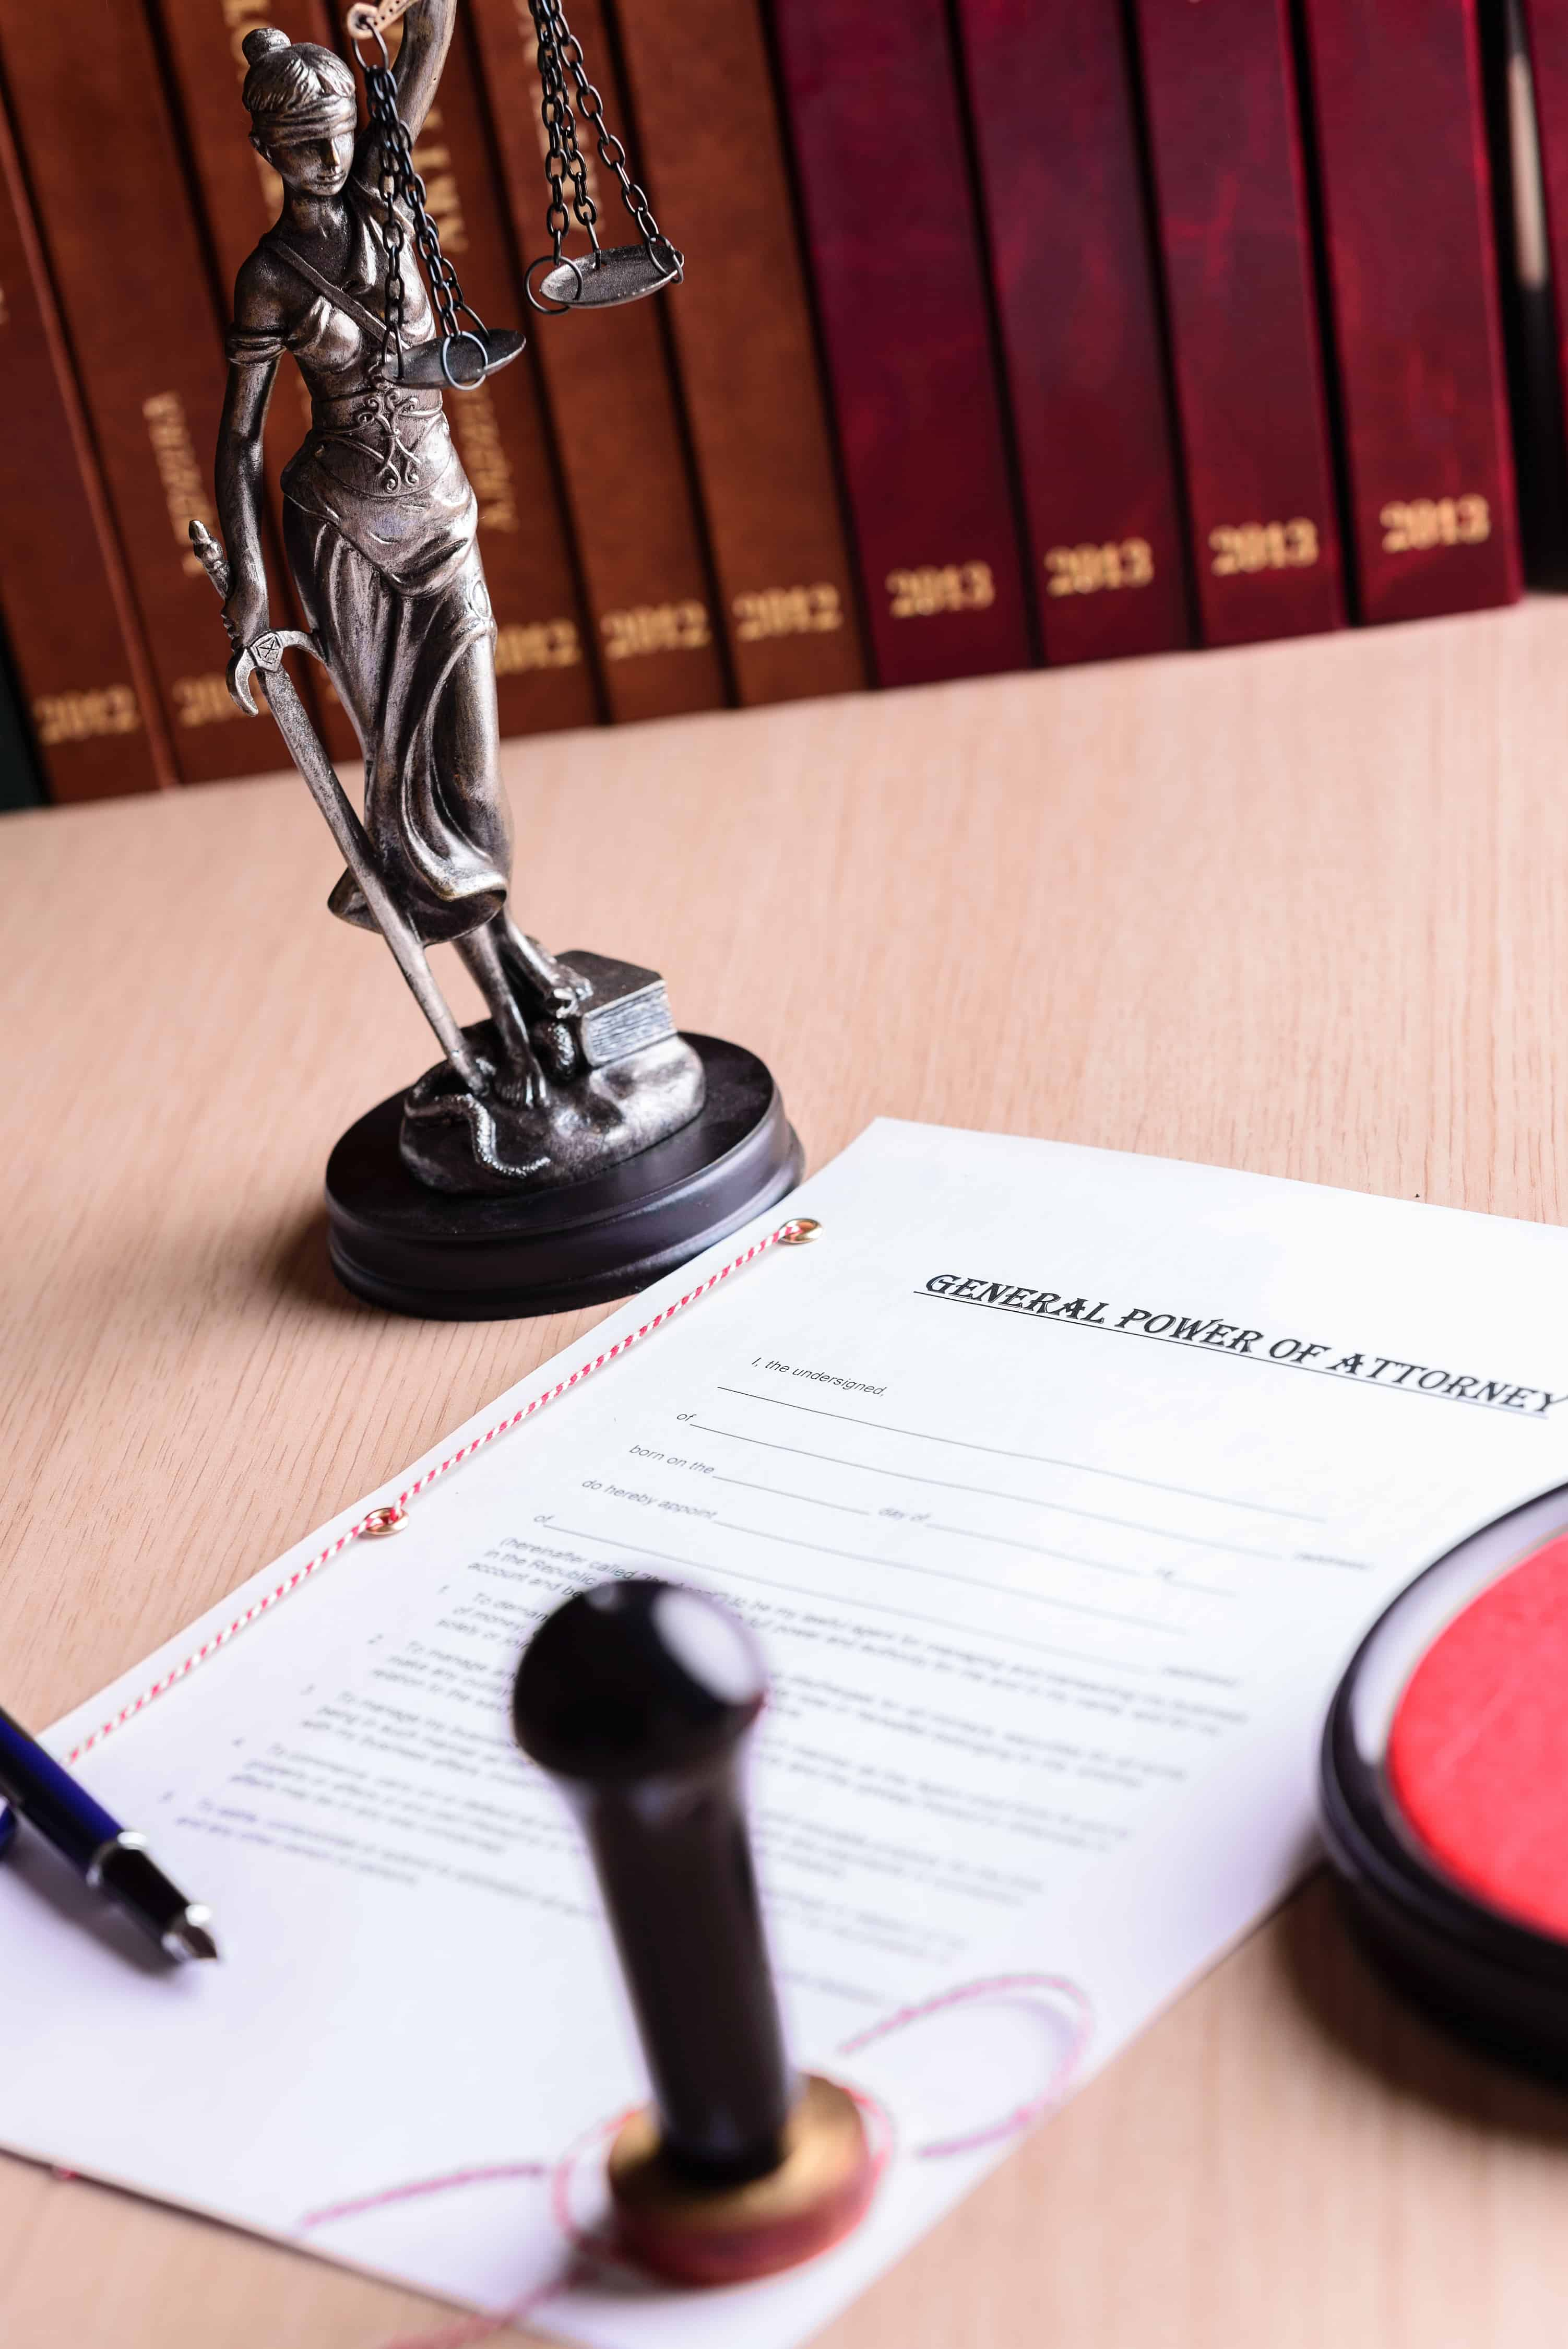 Power of Attorney: What You Need to Know